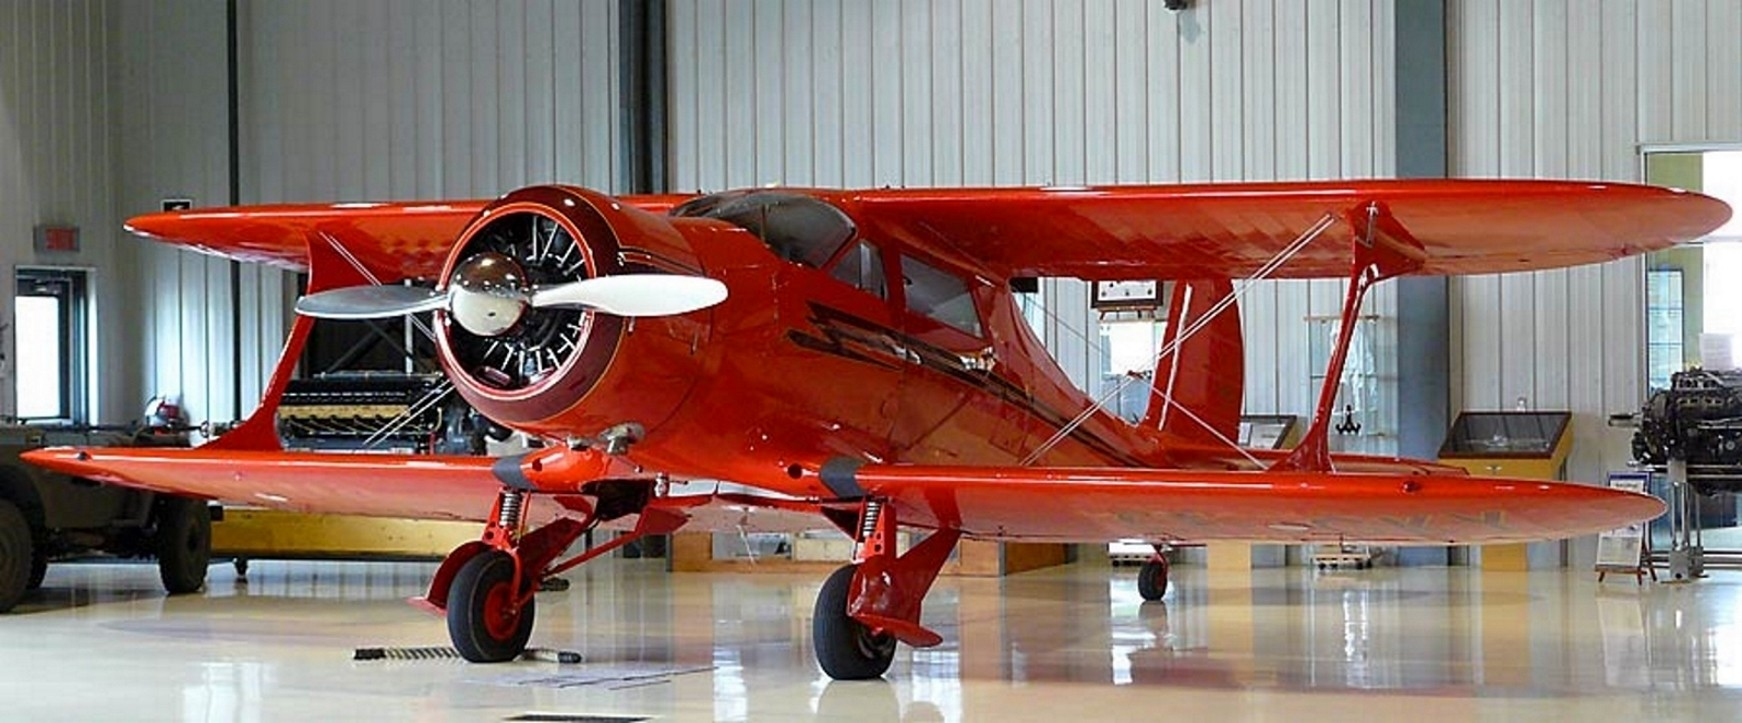 Beechcraft Model 17 Staggerwing - Walk Around